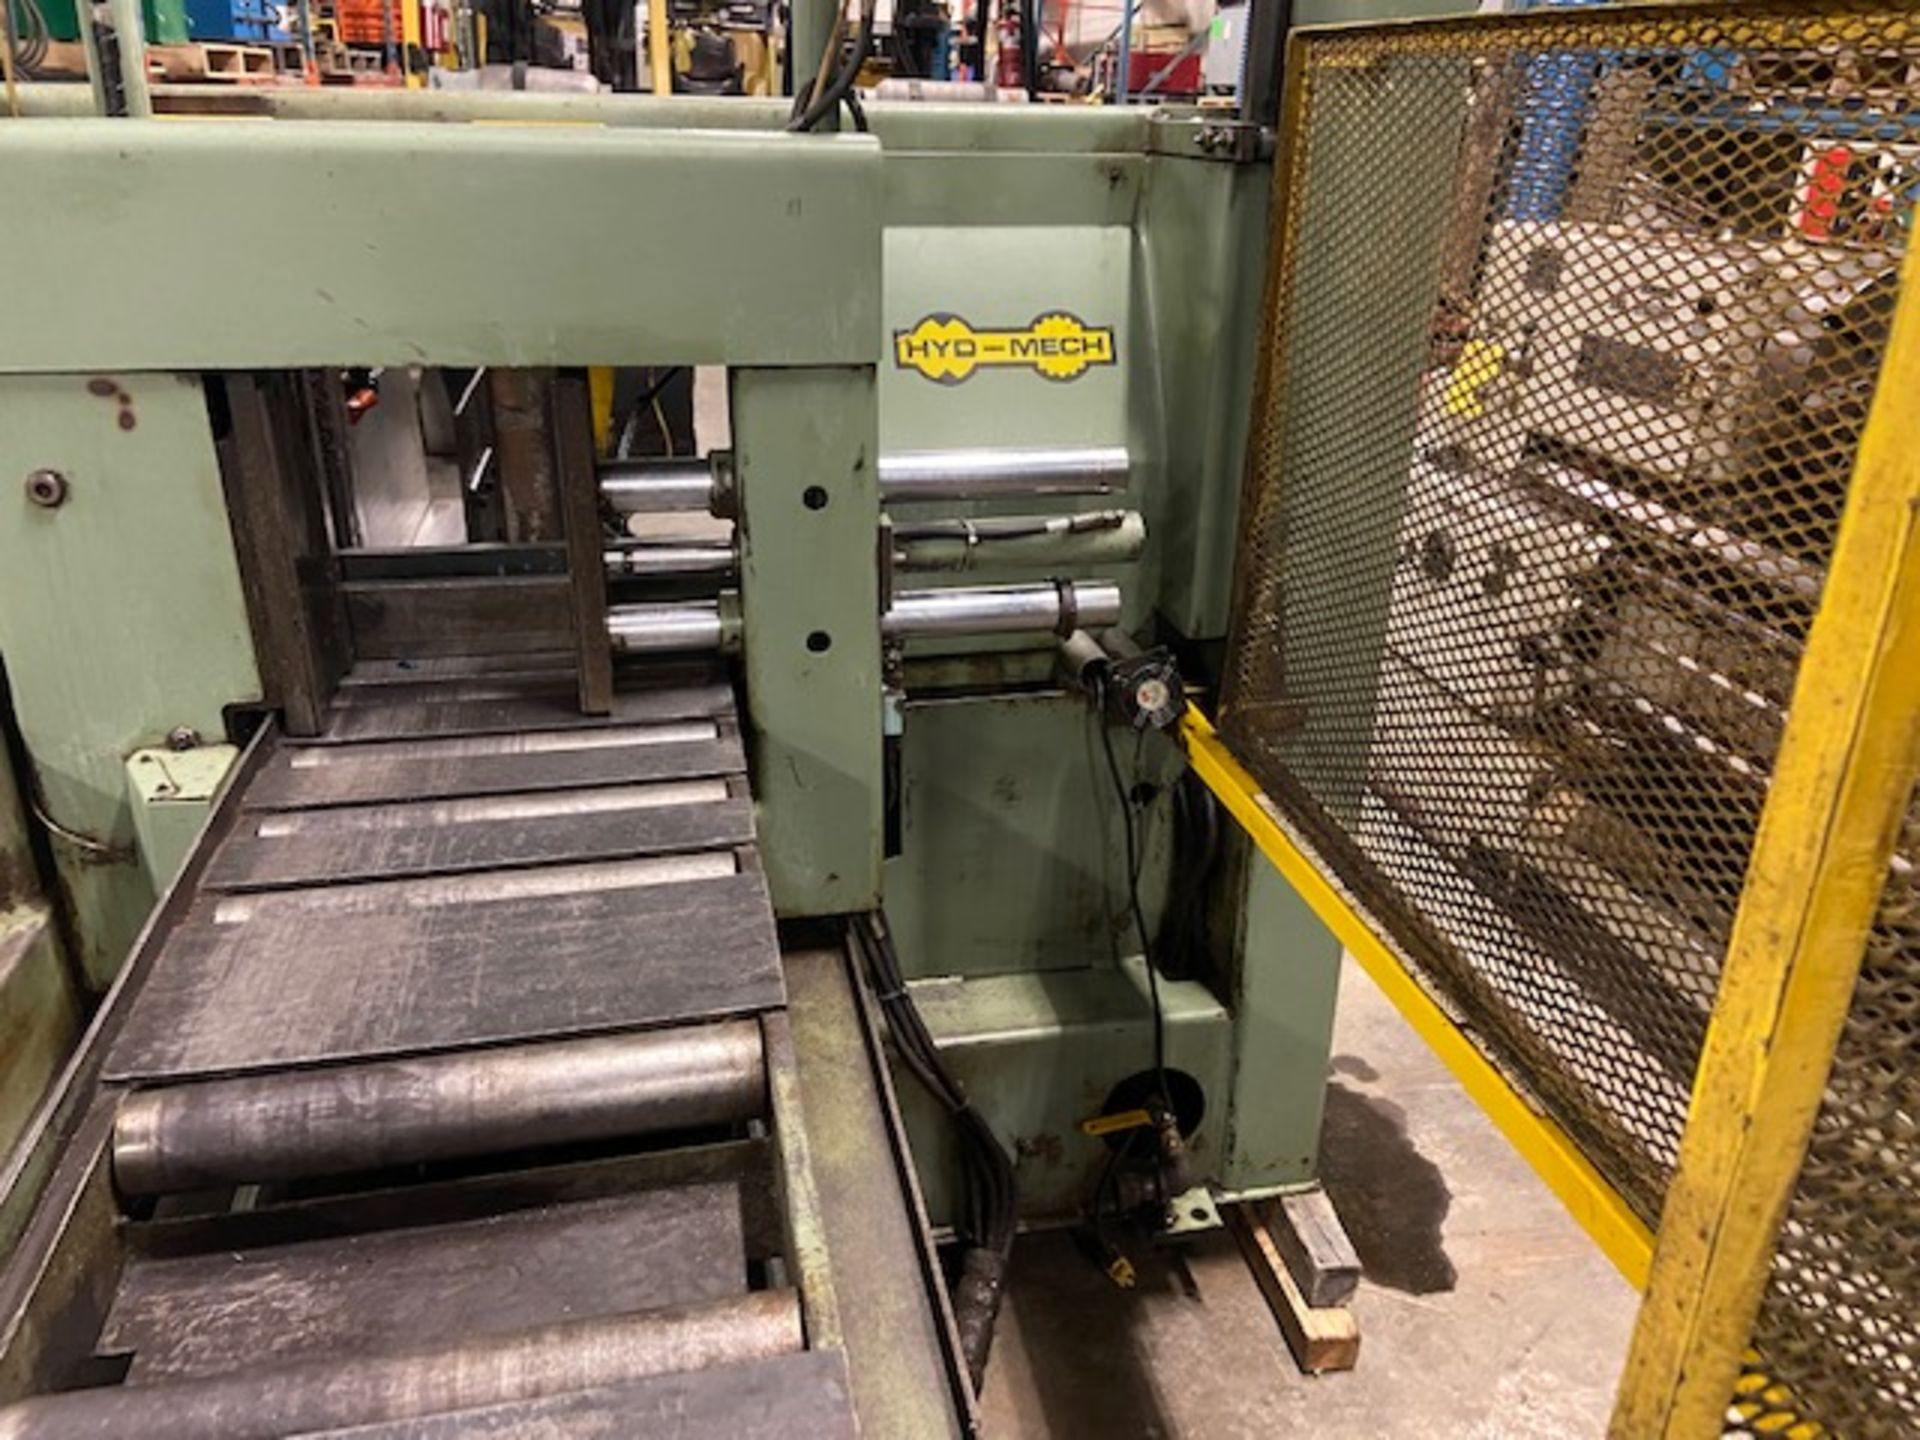 Hyd-Mech H-14 Fully Automatic horizontal band saw automatic feed and auto bundling system NICE - Image 4 of 4